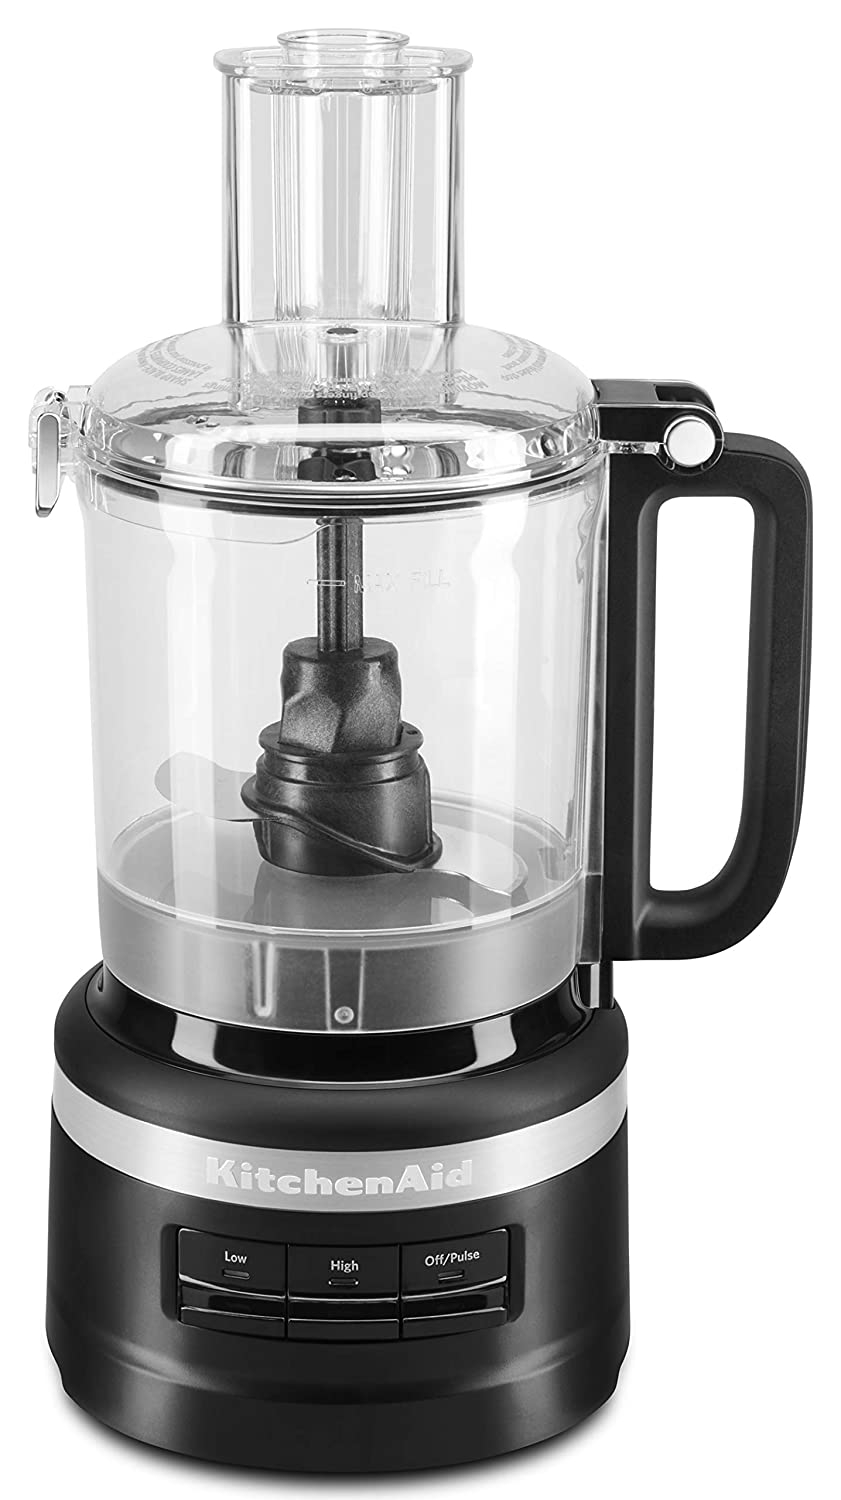 KitchenAid KFP0918BM Easy Store Food Processor, 9 Cup, Black Matte